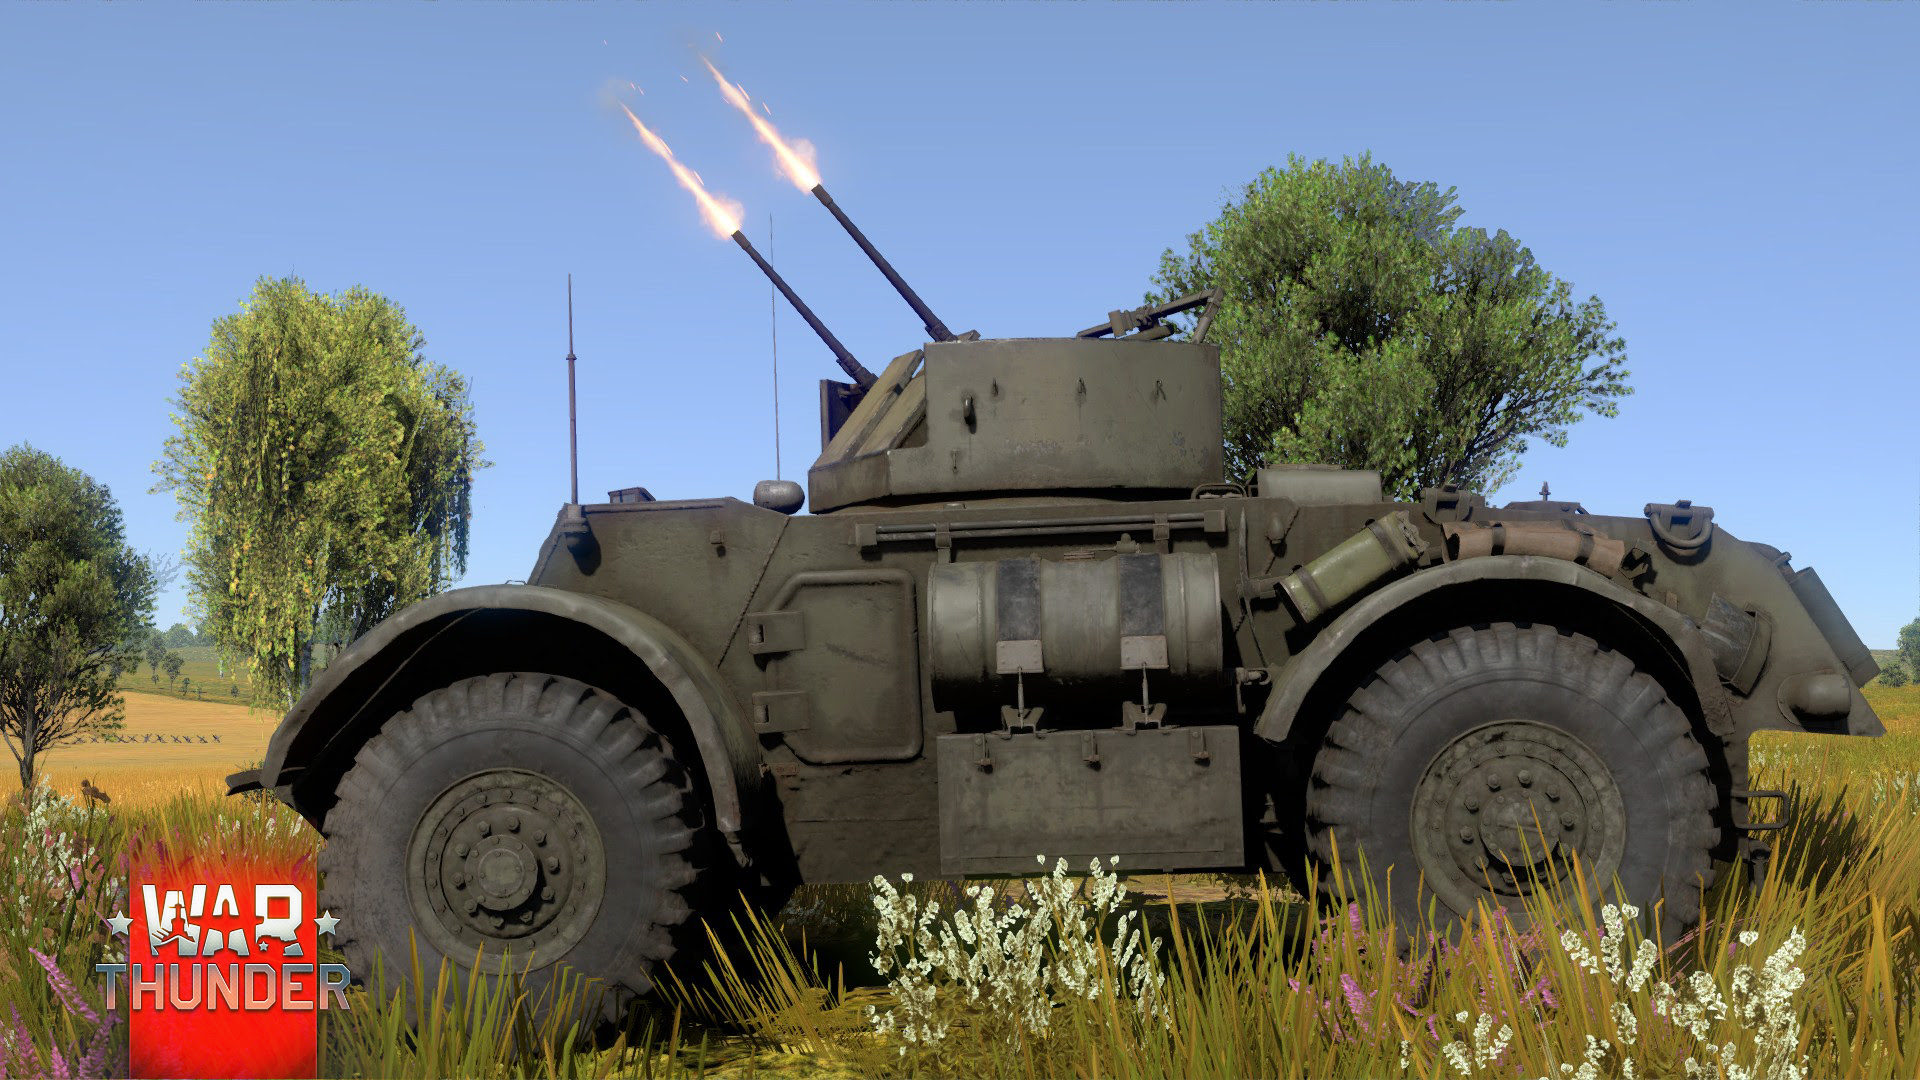 War Thunder - Next-Gen MMO Combat Game for PC, Mac, Linux and PlayStation®4   Play for free now ...